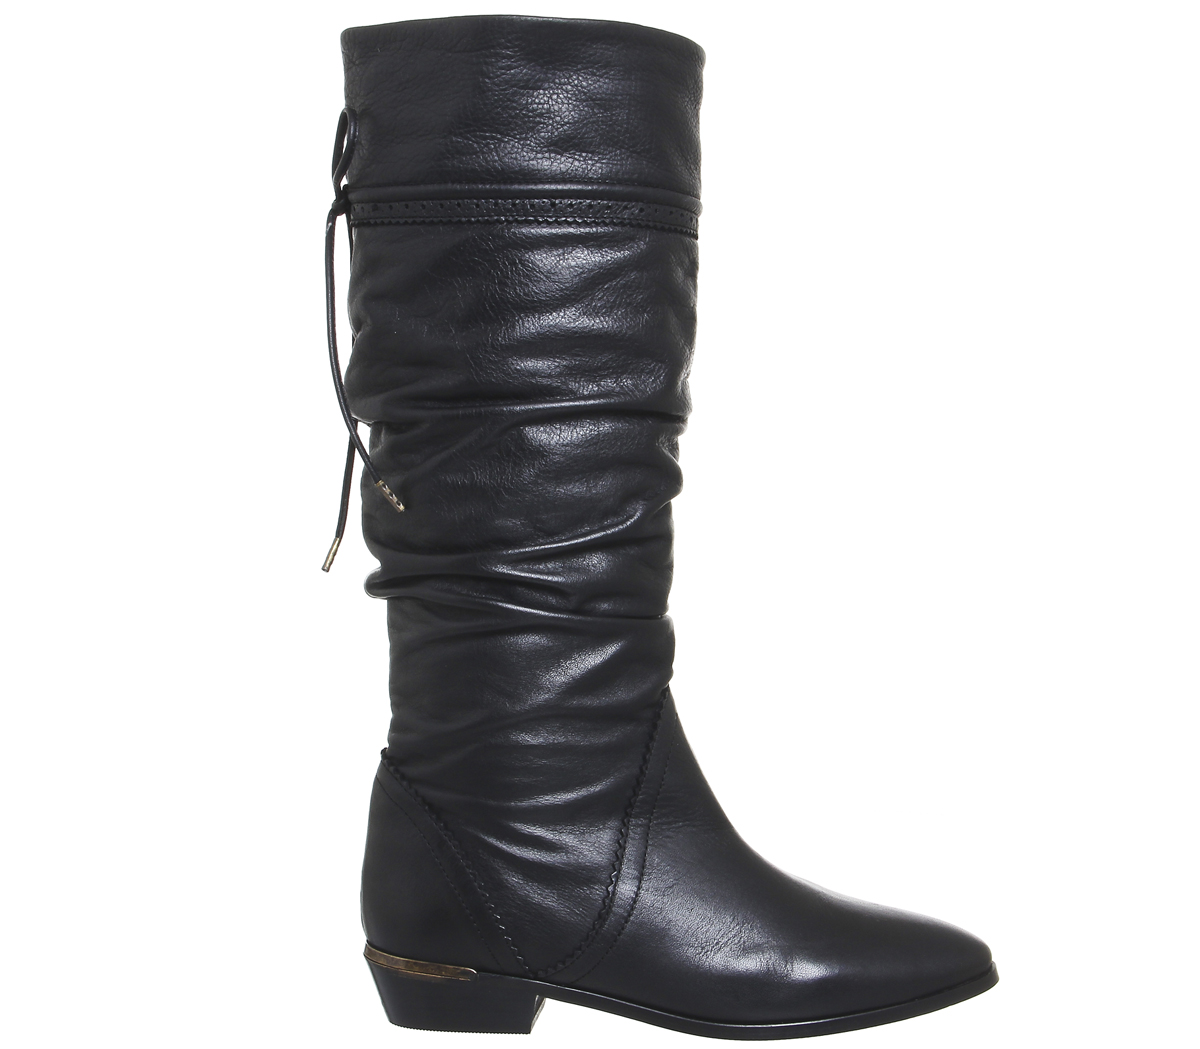 Descuento de la marca Womens Office Kitty Kitty Kitty Vintage Slouch Boots BLACK LEATHER Boots eeea5a